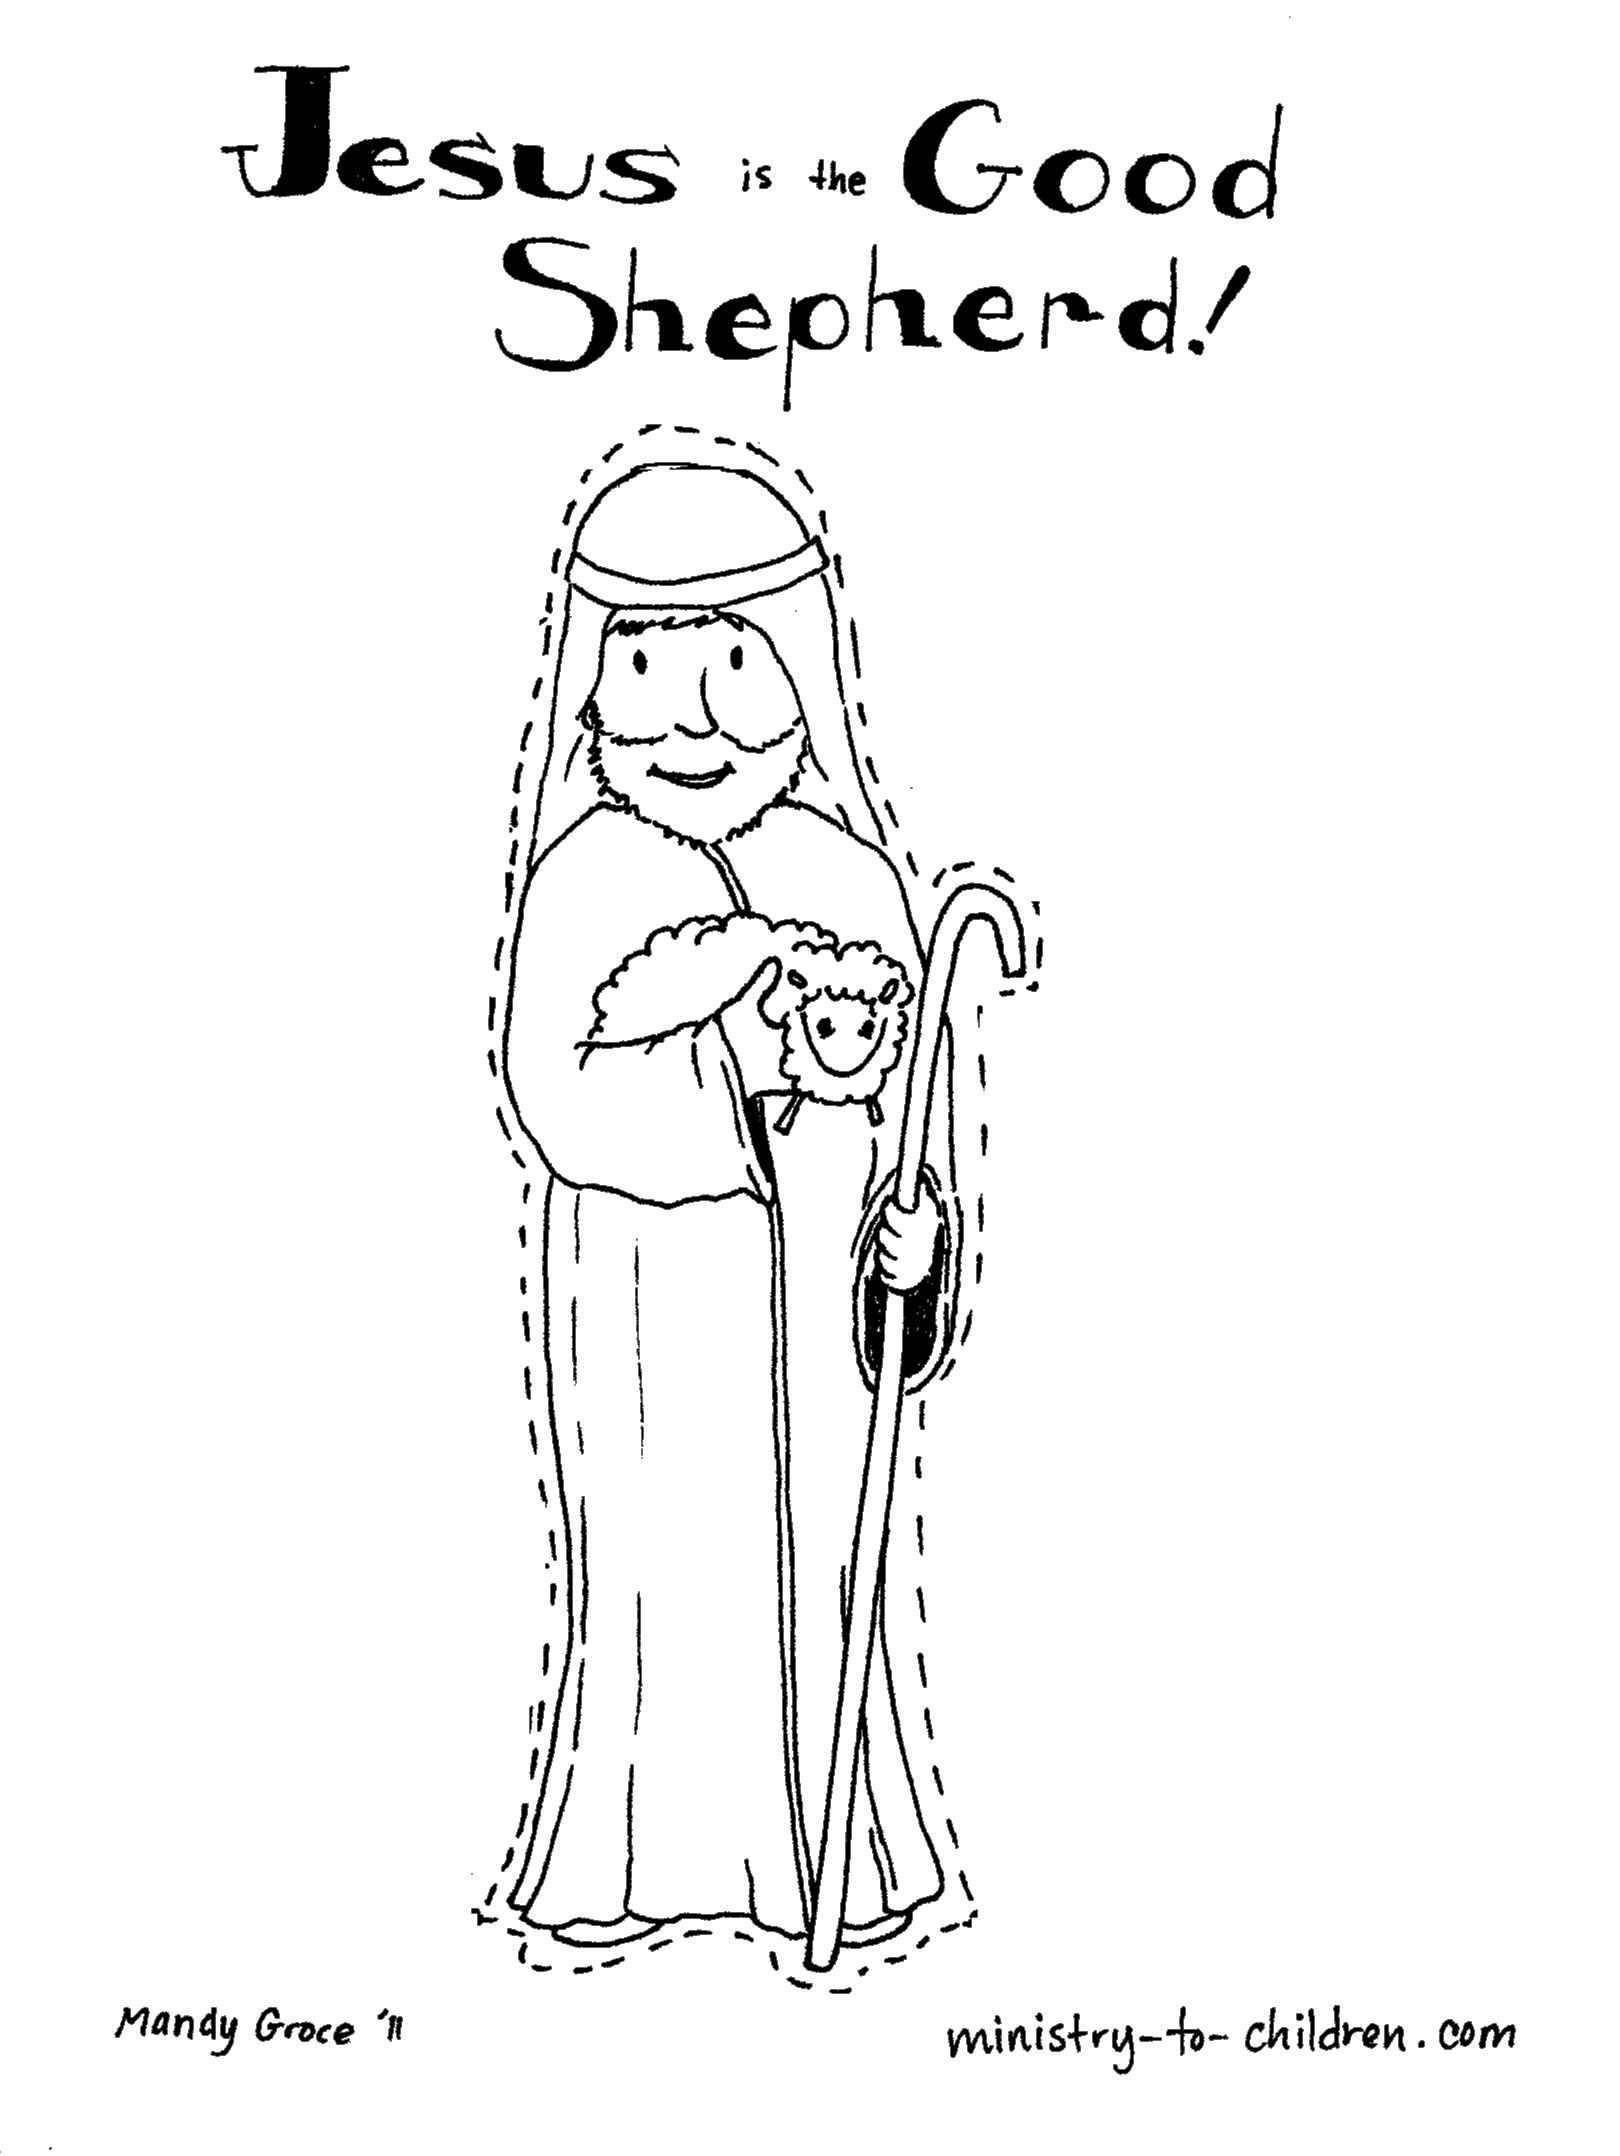 jesus the sheperd coloring pages | Pin by Vanessa Lim on Education | Preschool bible, Bible ...